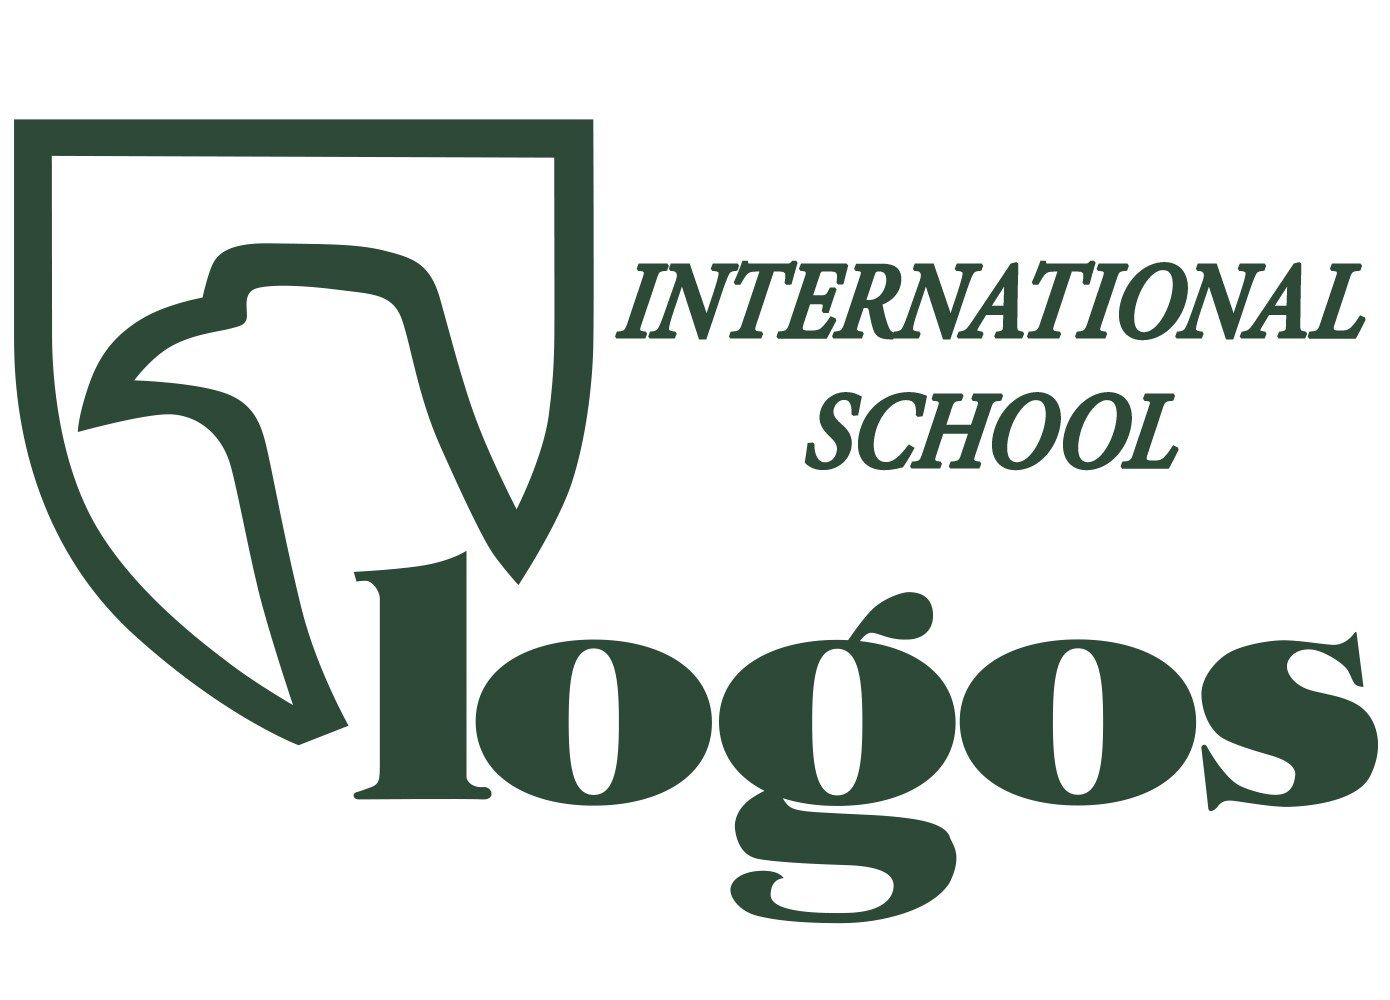 Foto de Logotipo Logos International School